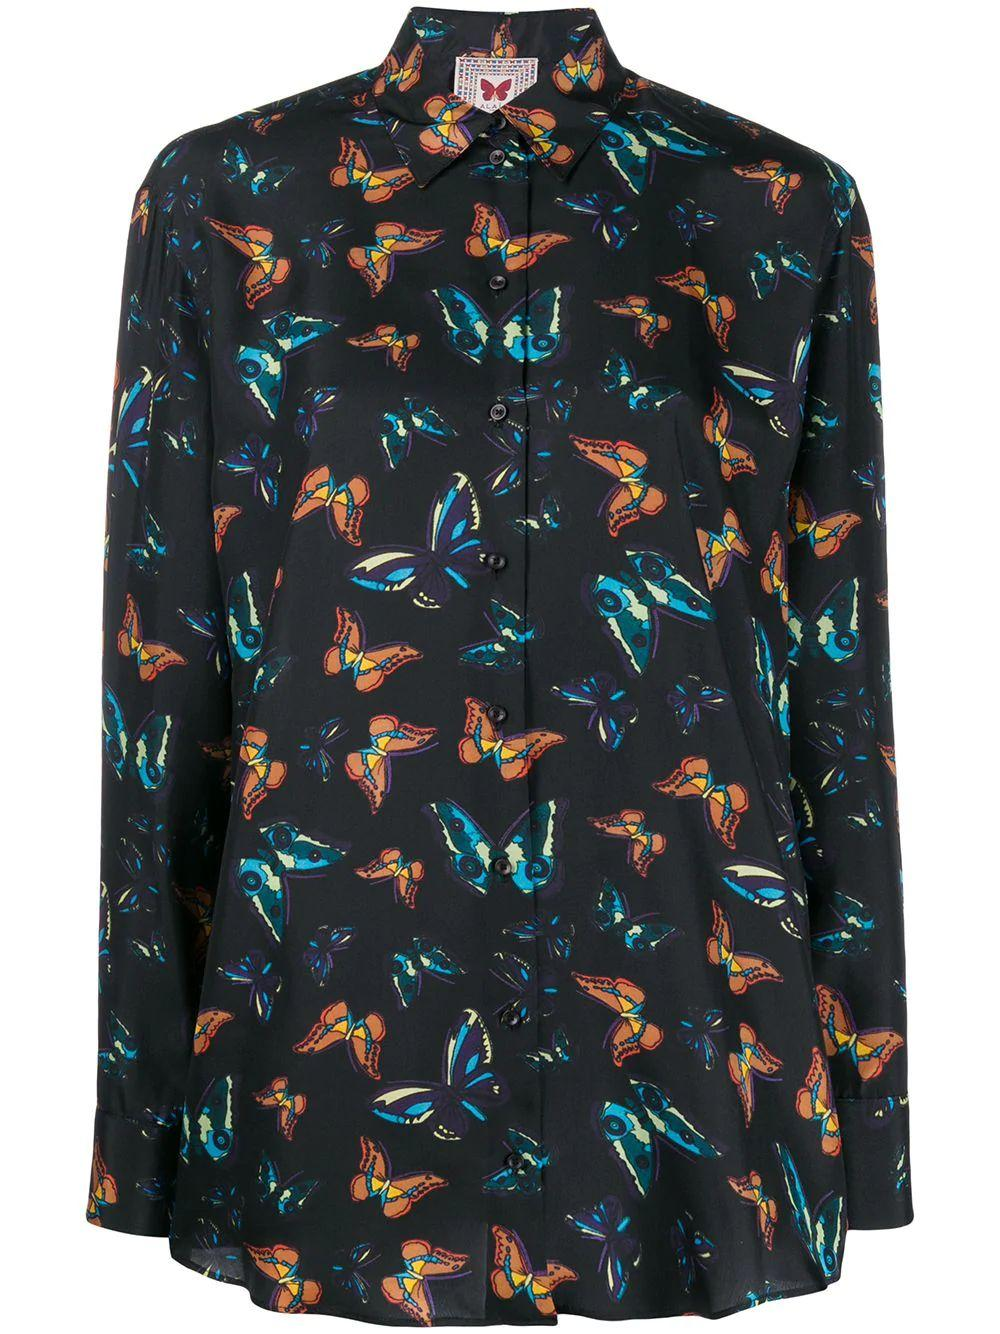 Long Sleeve Butterfly Print Blouse Item # 9C9C751RT293